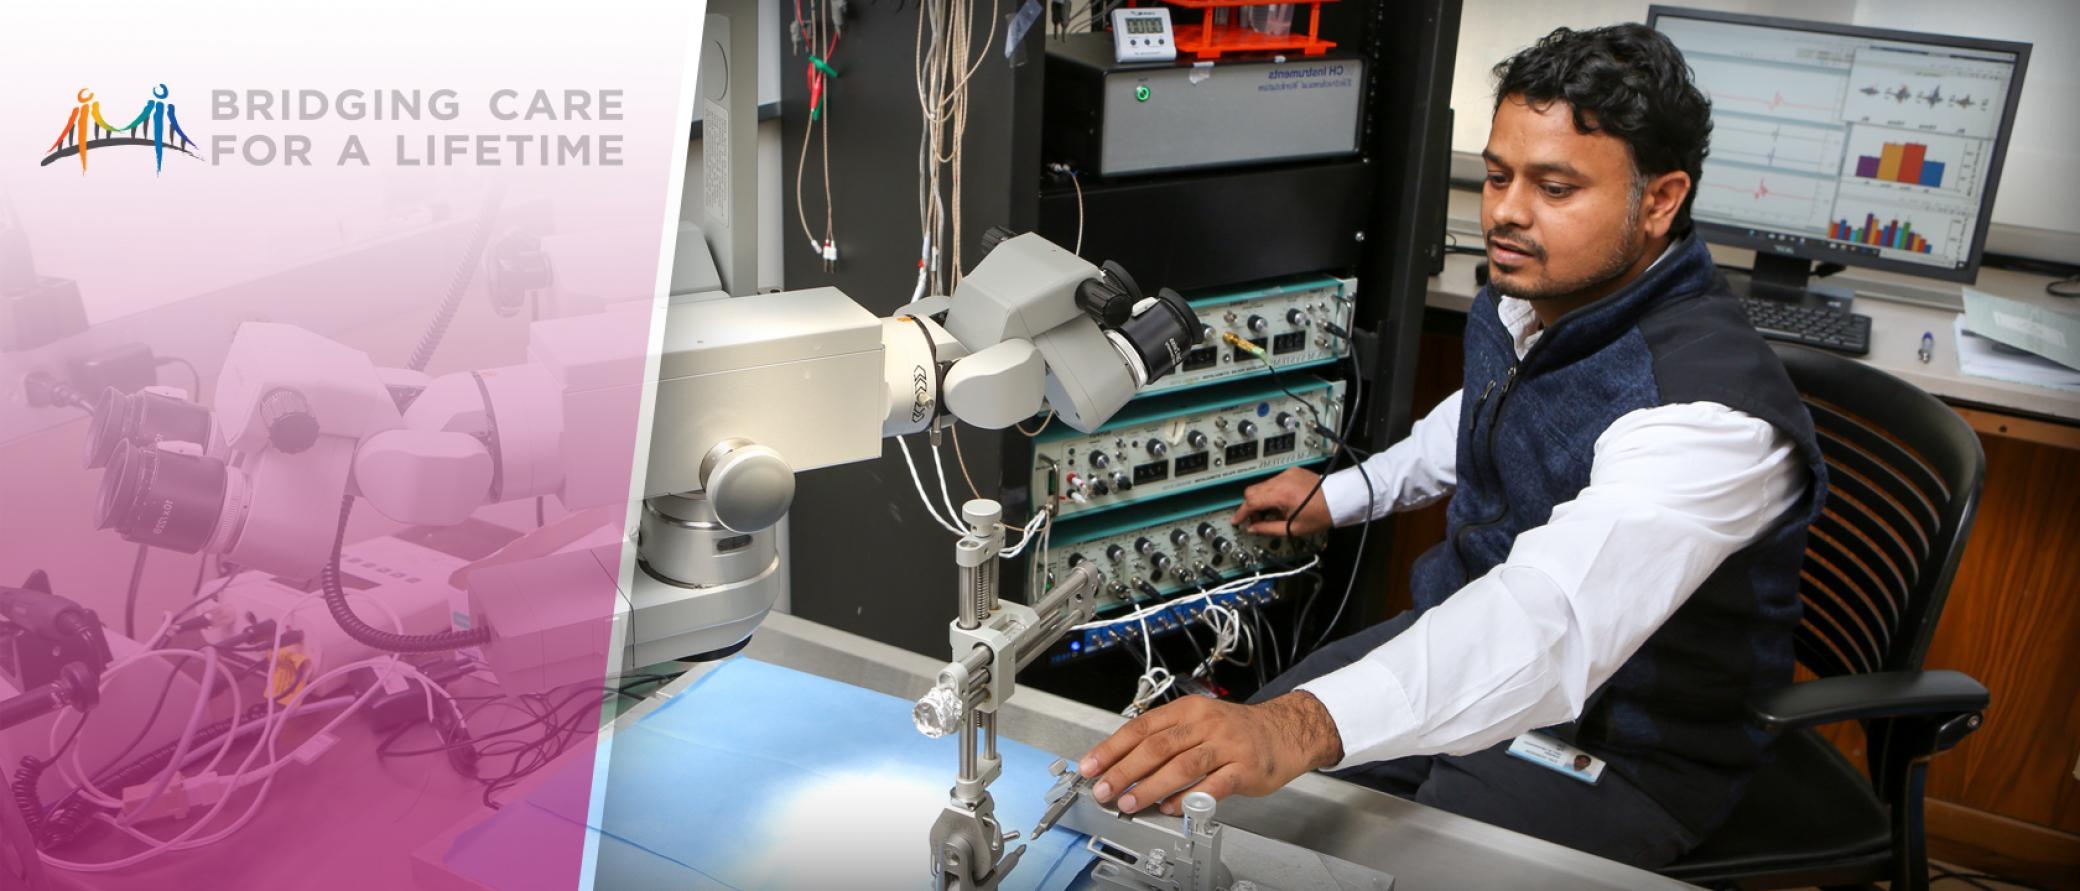 Man using a microscope and scientific equipment